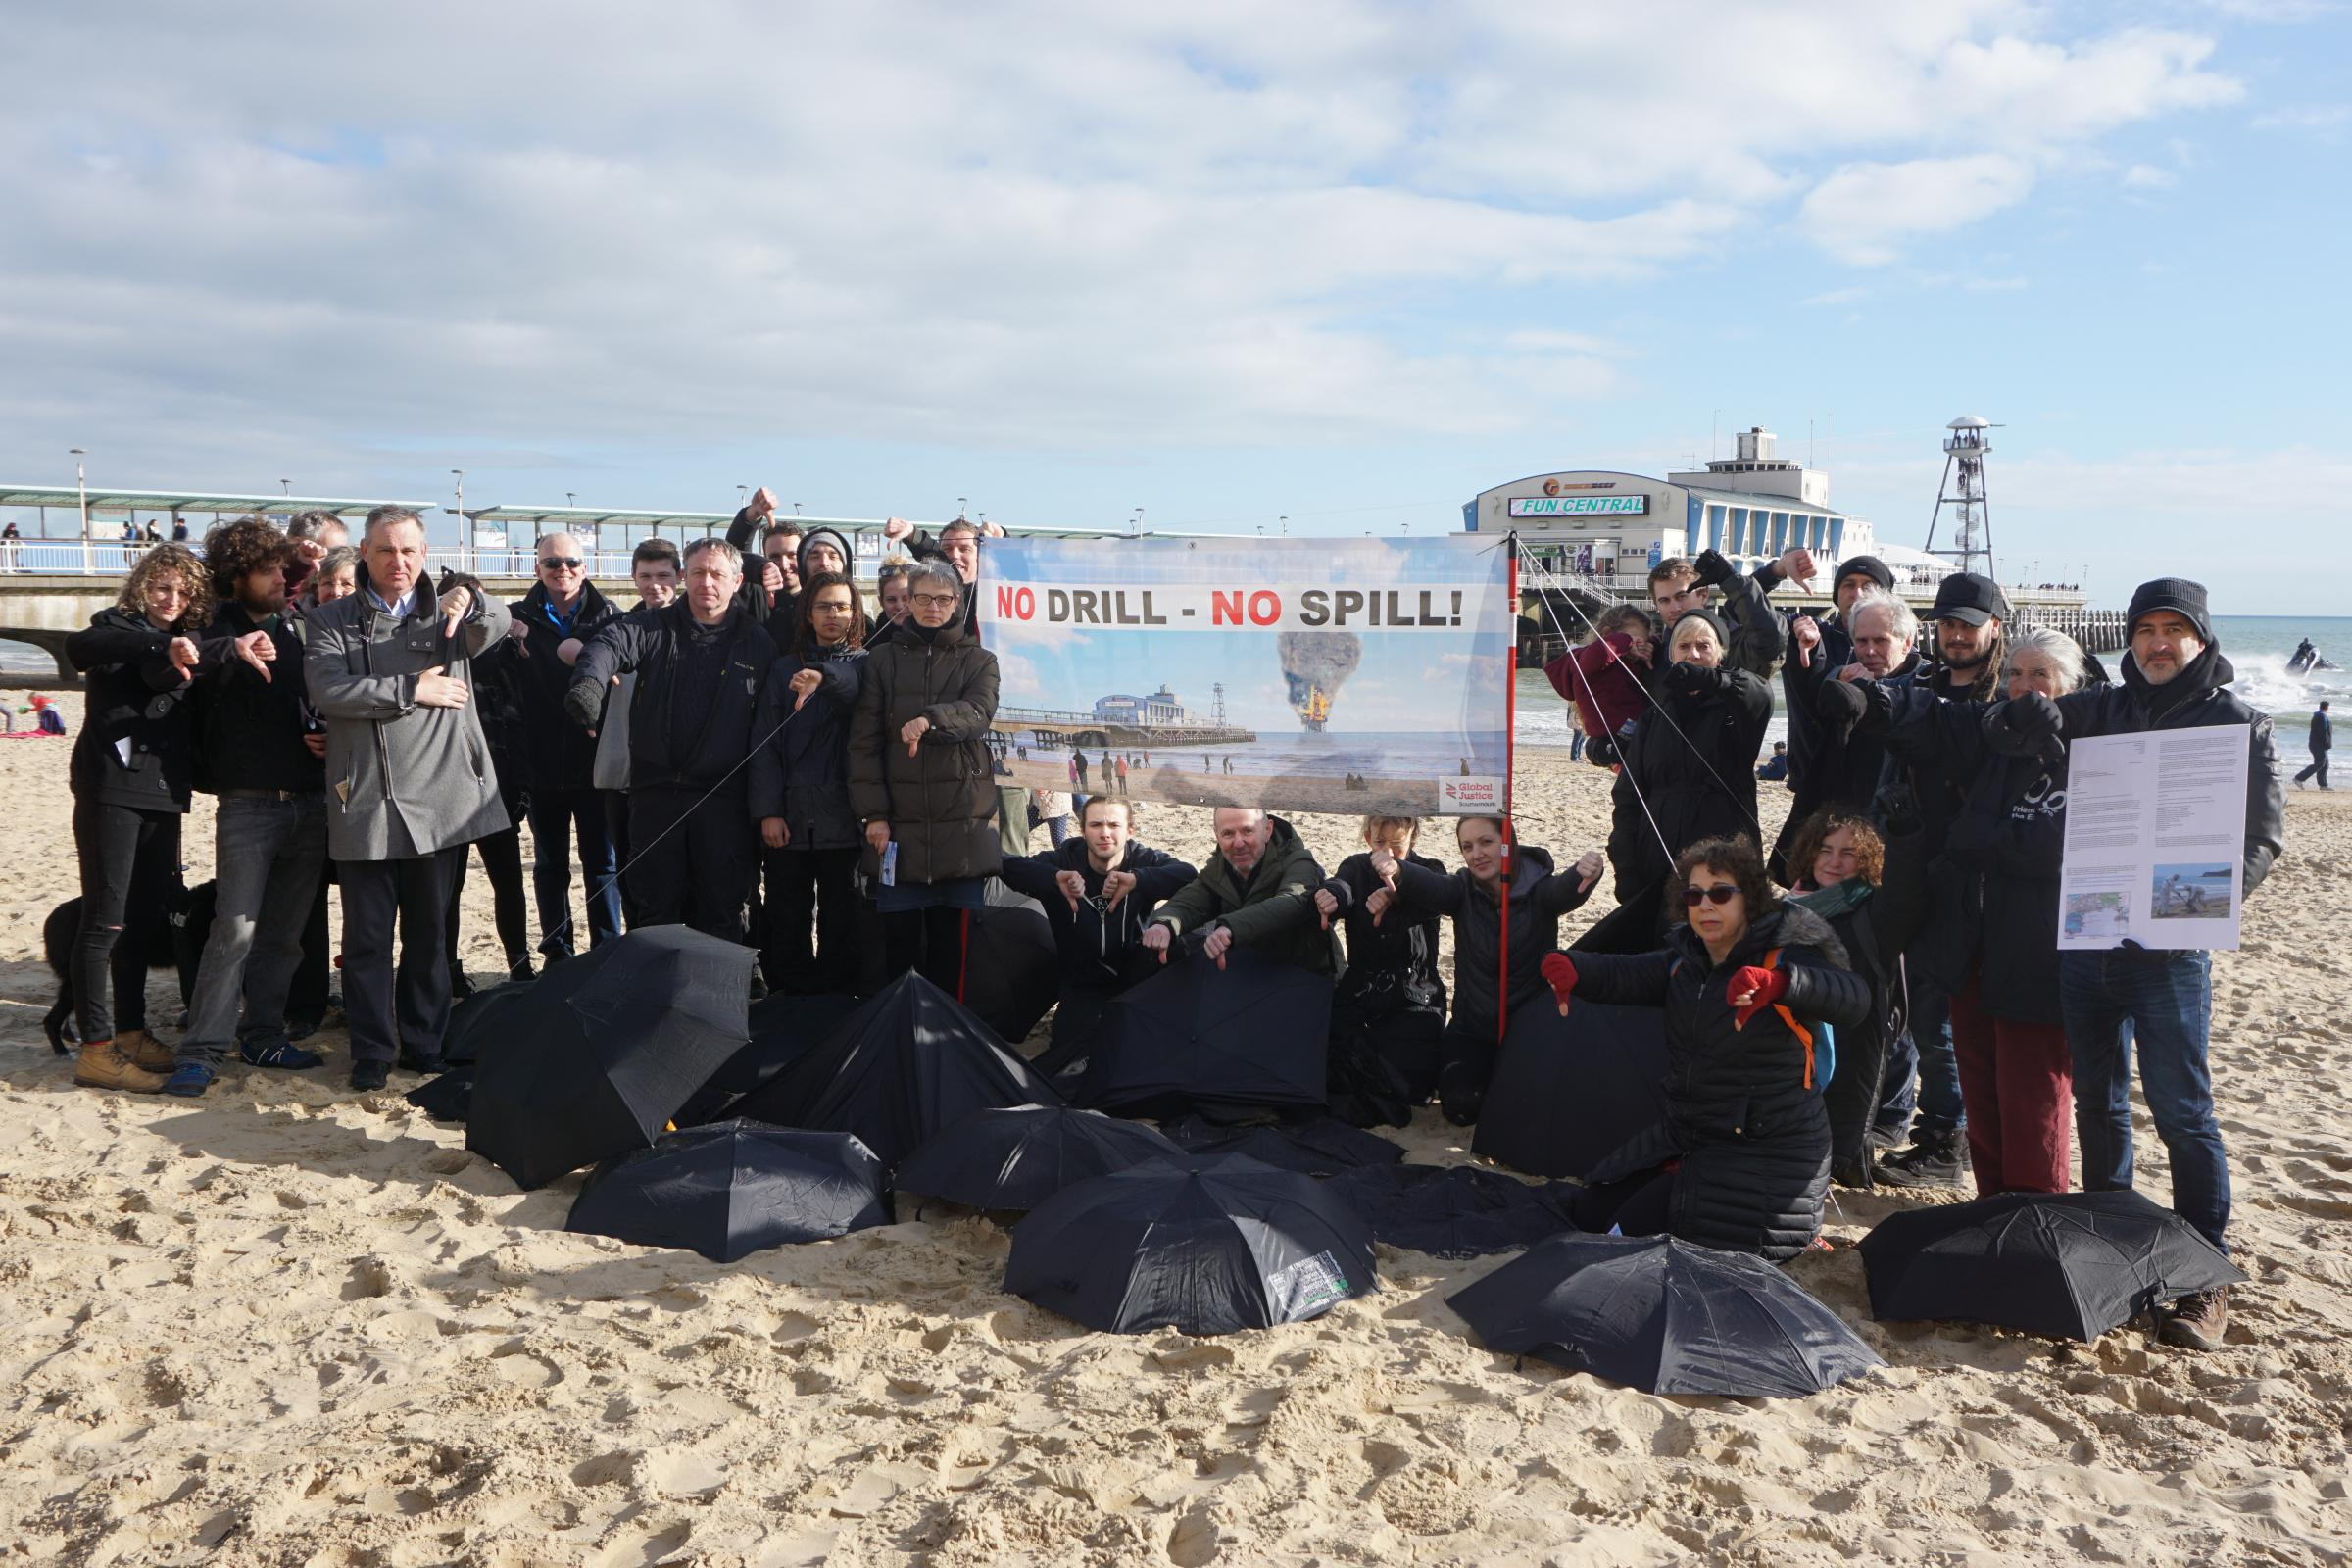 Protesters gather by Bournemouth Pier to raise awareness of plans to place an oil rig in Poole Bay